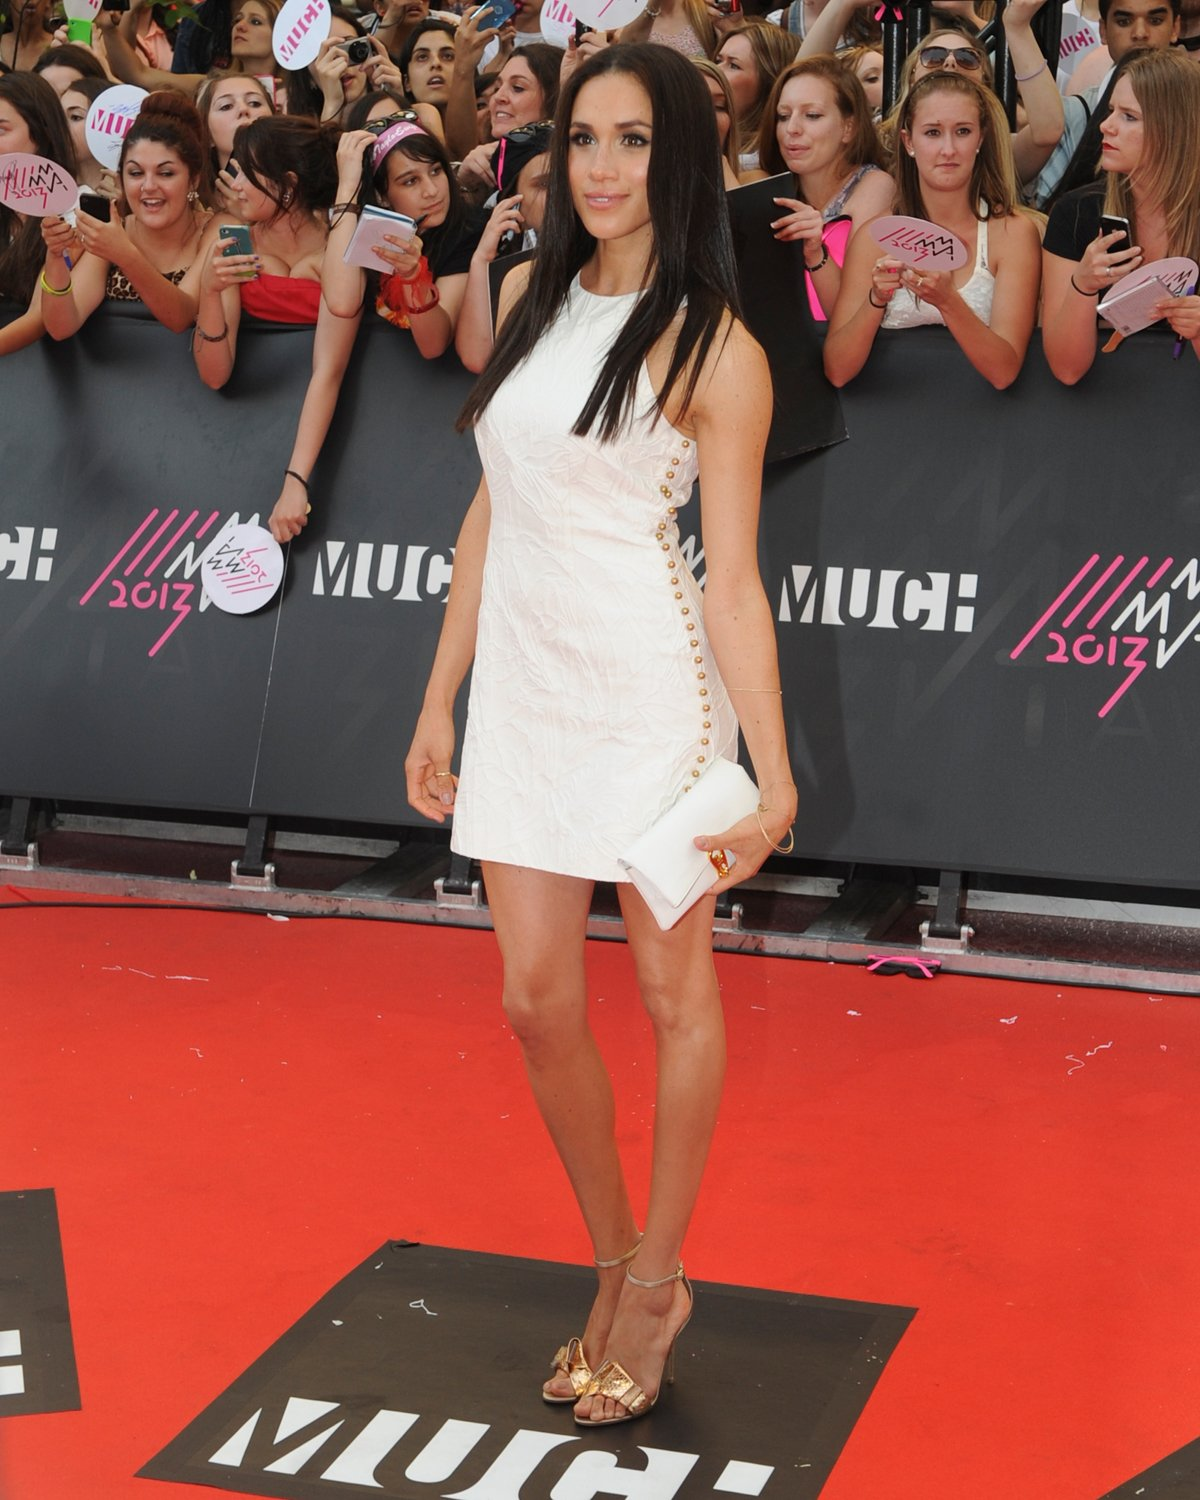 Meghan Markle MuchMusic Video Awards 2013 - Arrivals